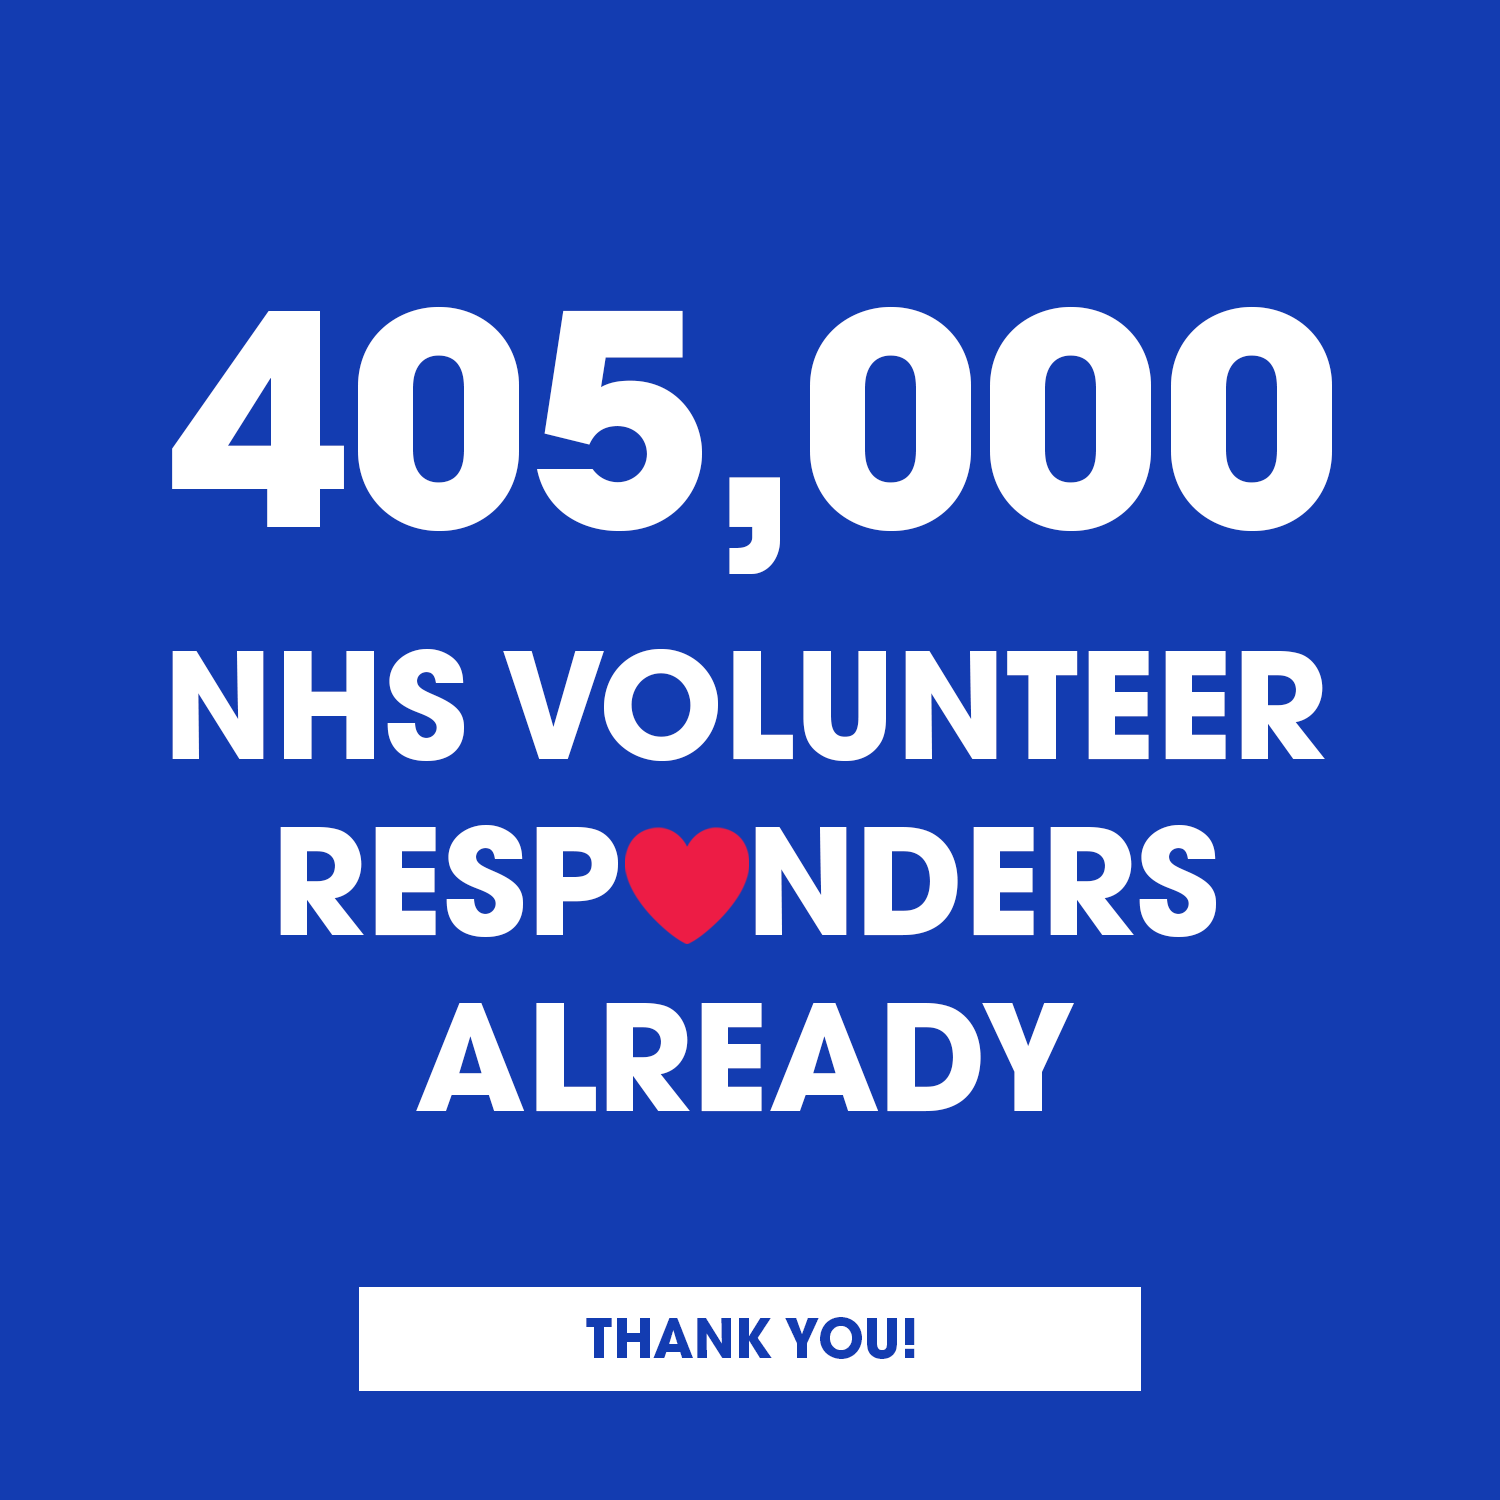 A MASSIVE thank you to the 405,000 people who've already signed up to become an NHS Volunteer Respon